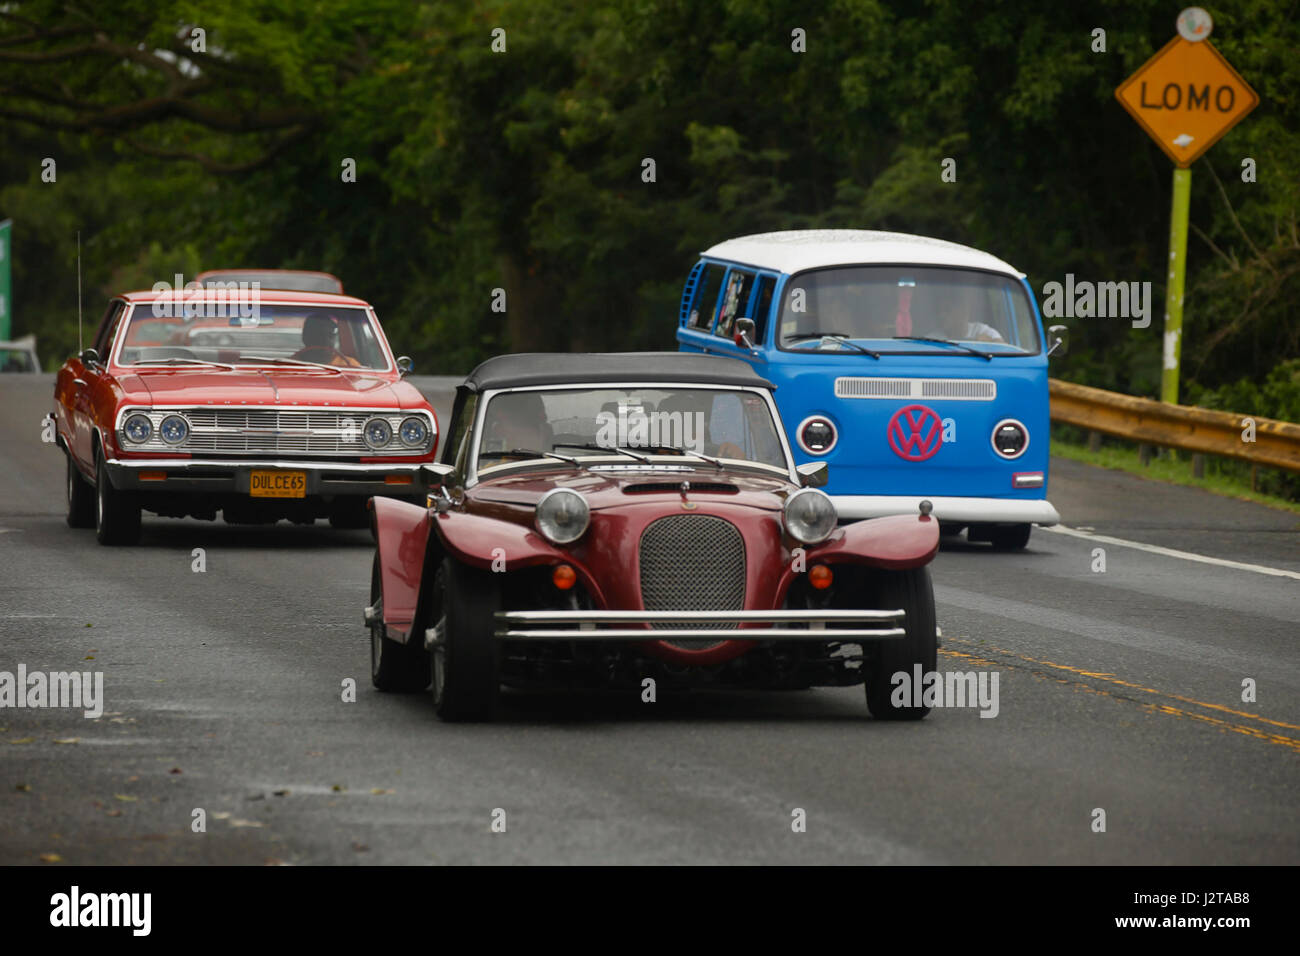 Dorado, Puerto Rico. 30th Apr, 2017. View of cars during an old car ...